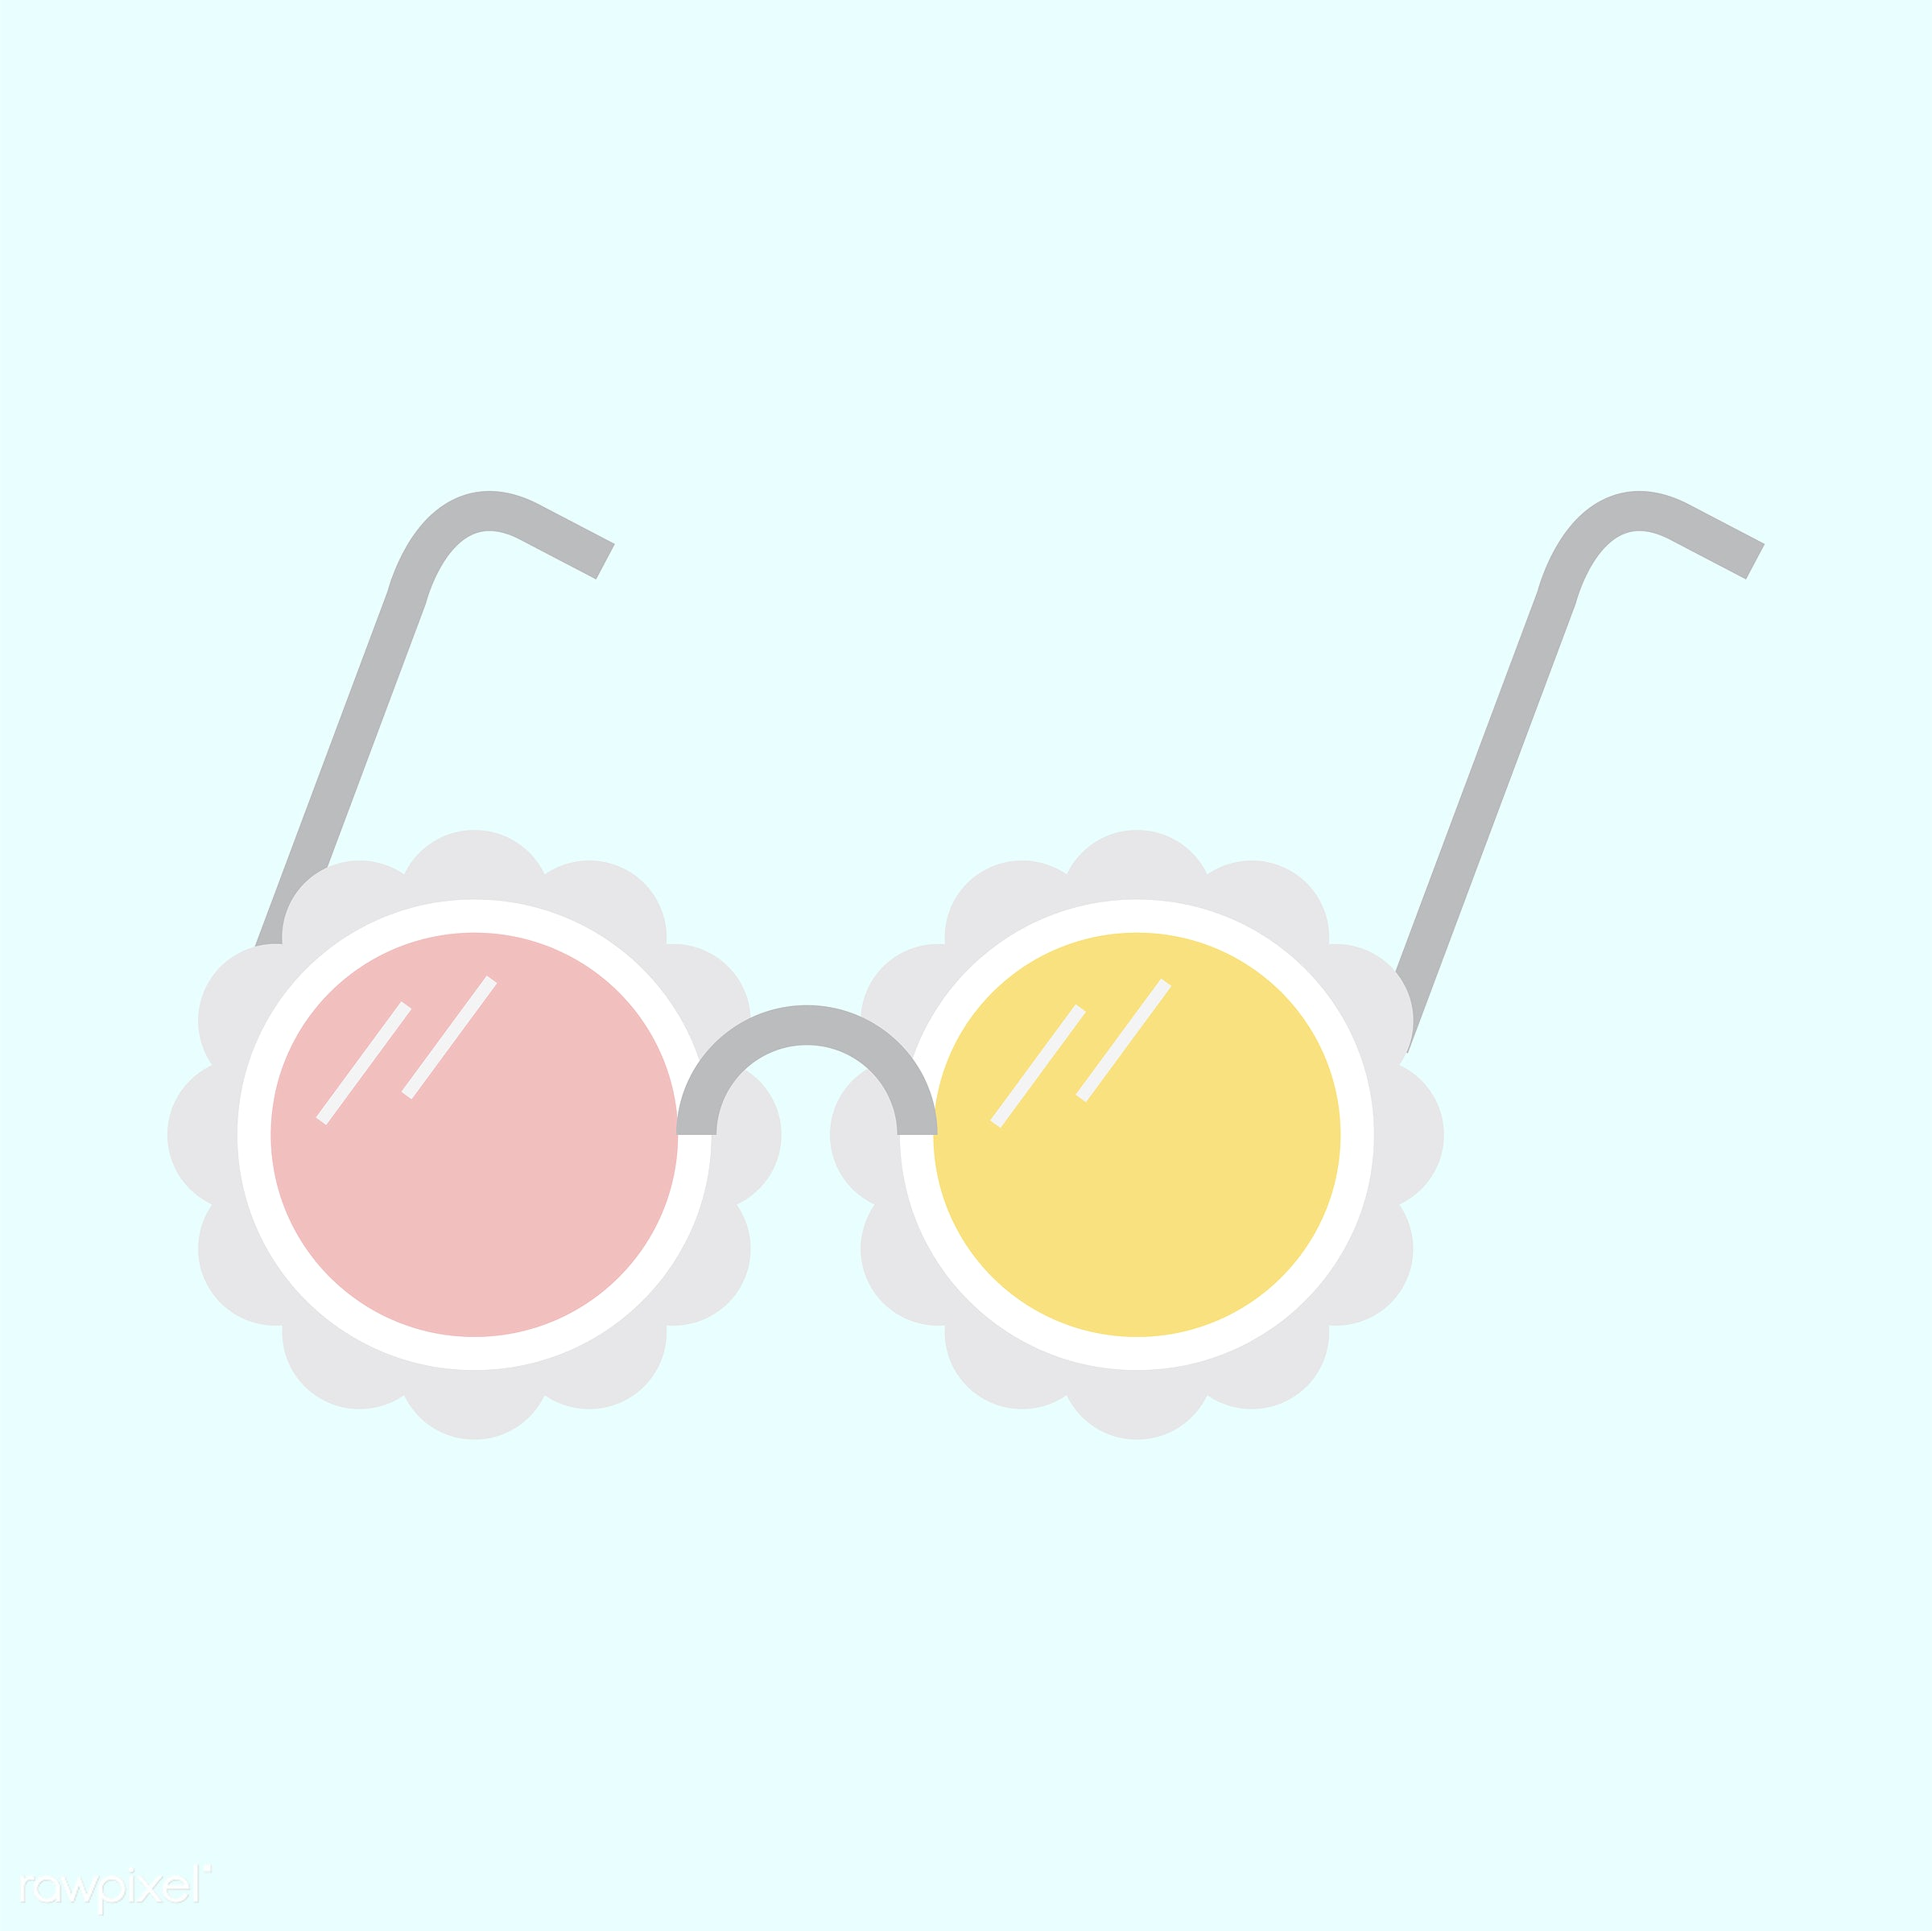 vector, illustration, graphic, cute, sweet, girly, pastel, sunglasses, isolated, summer